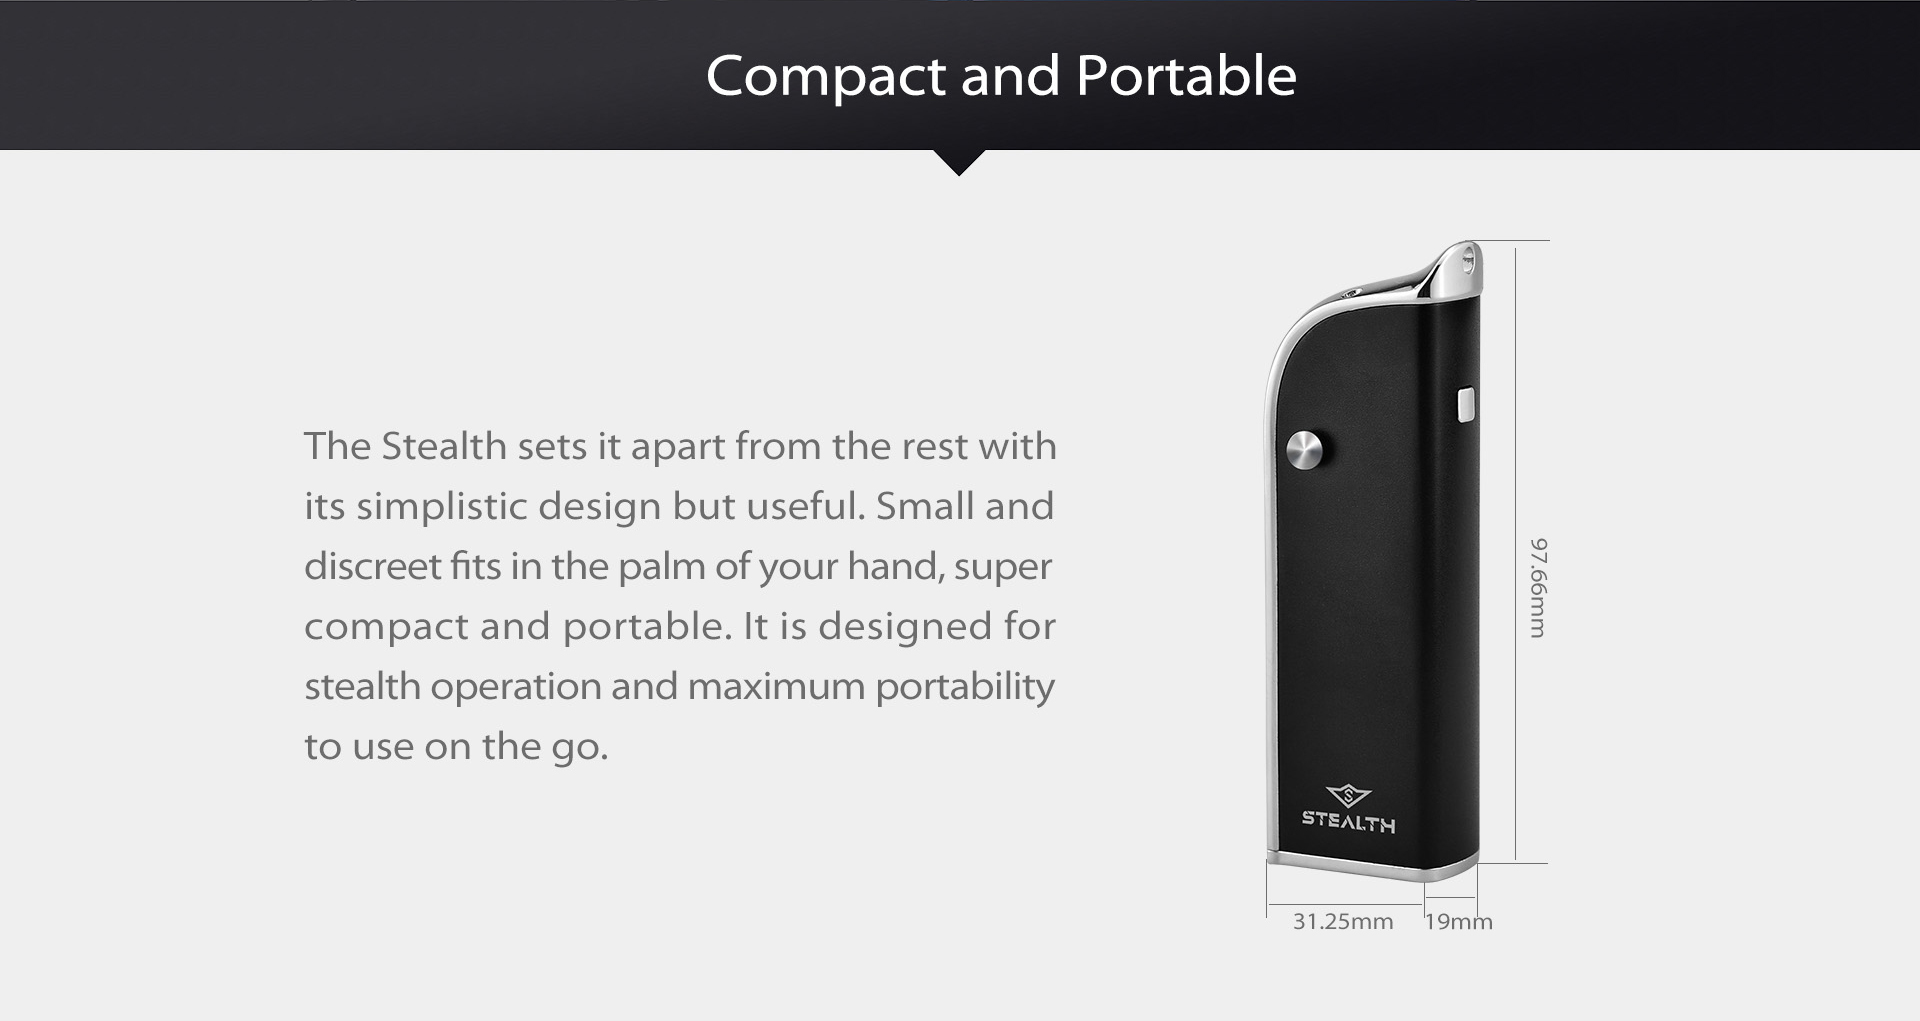 Yocan Stealth sets it apart from the rest with its simplistic design but useful.